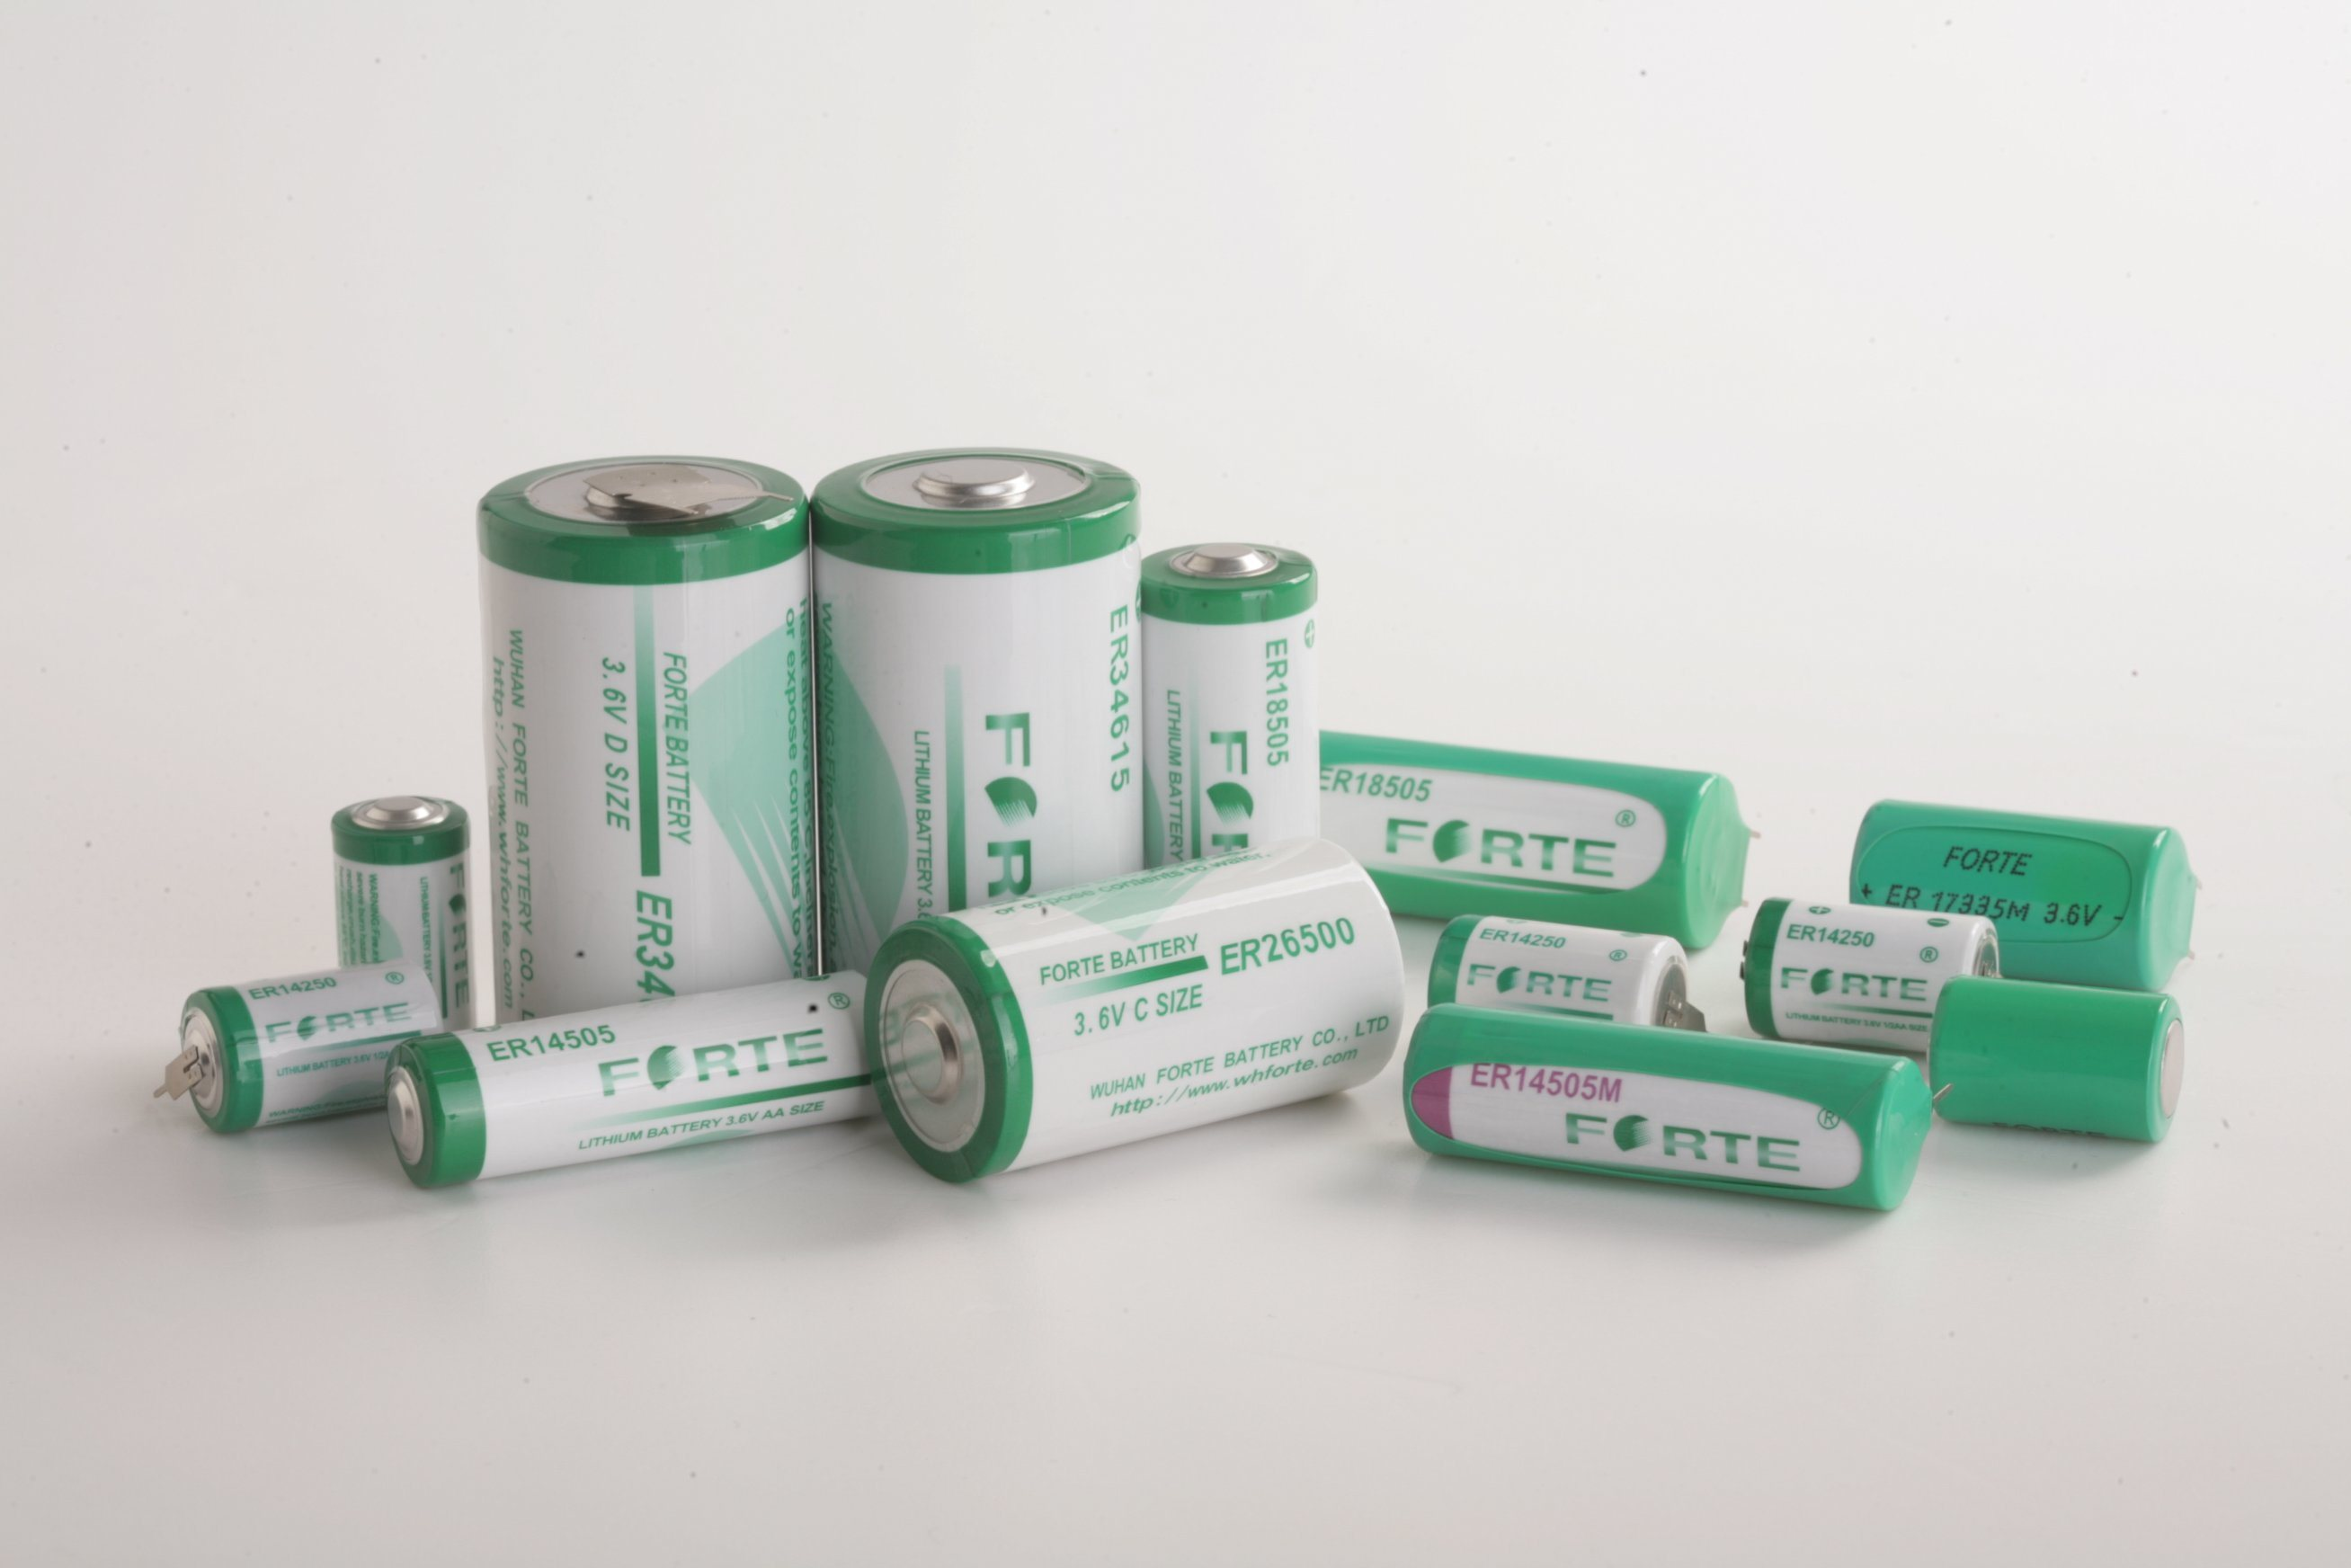 3.6V Er14250m Primary Lithium Battery 1/2AA Size